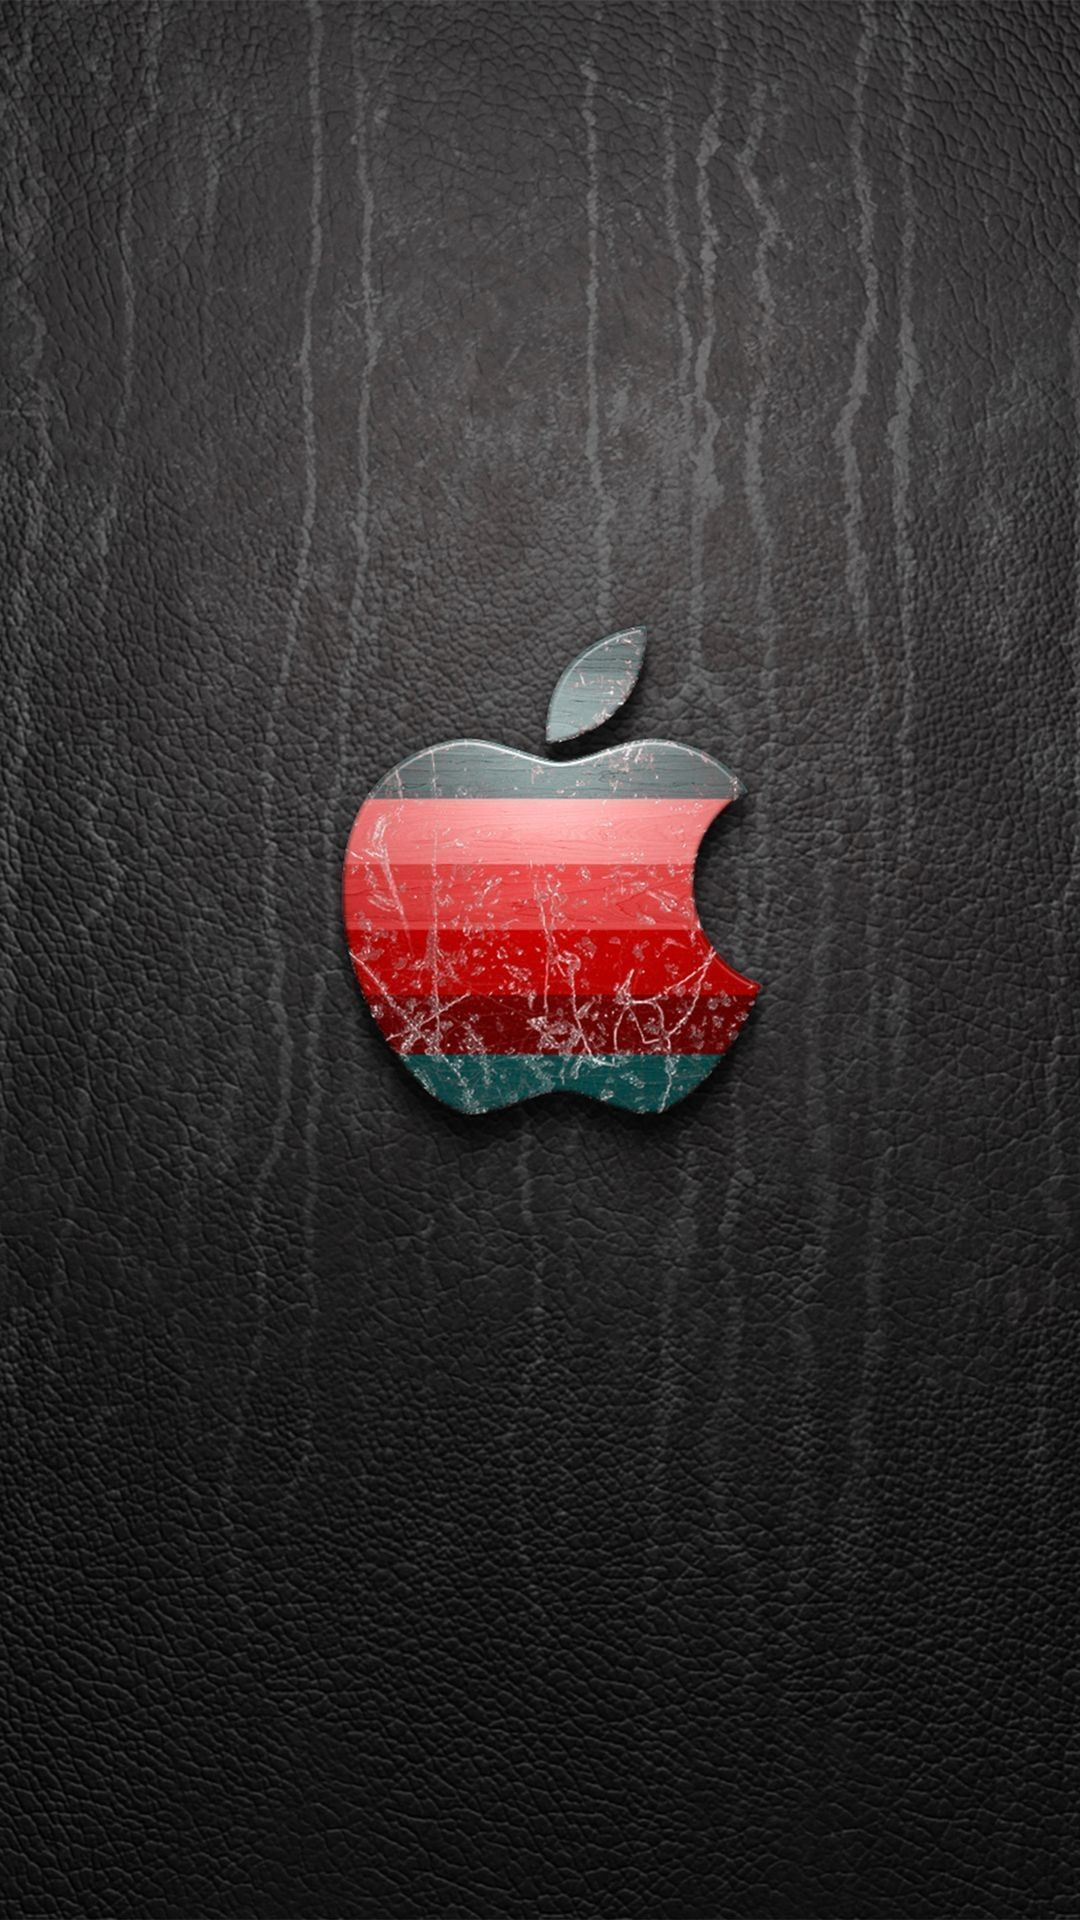 Apple Leather iPhone Wallpaper HD